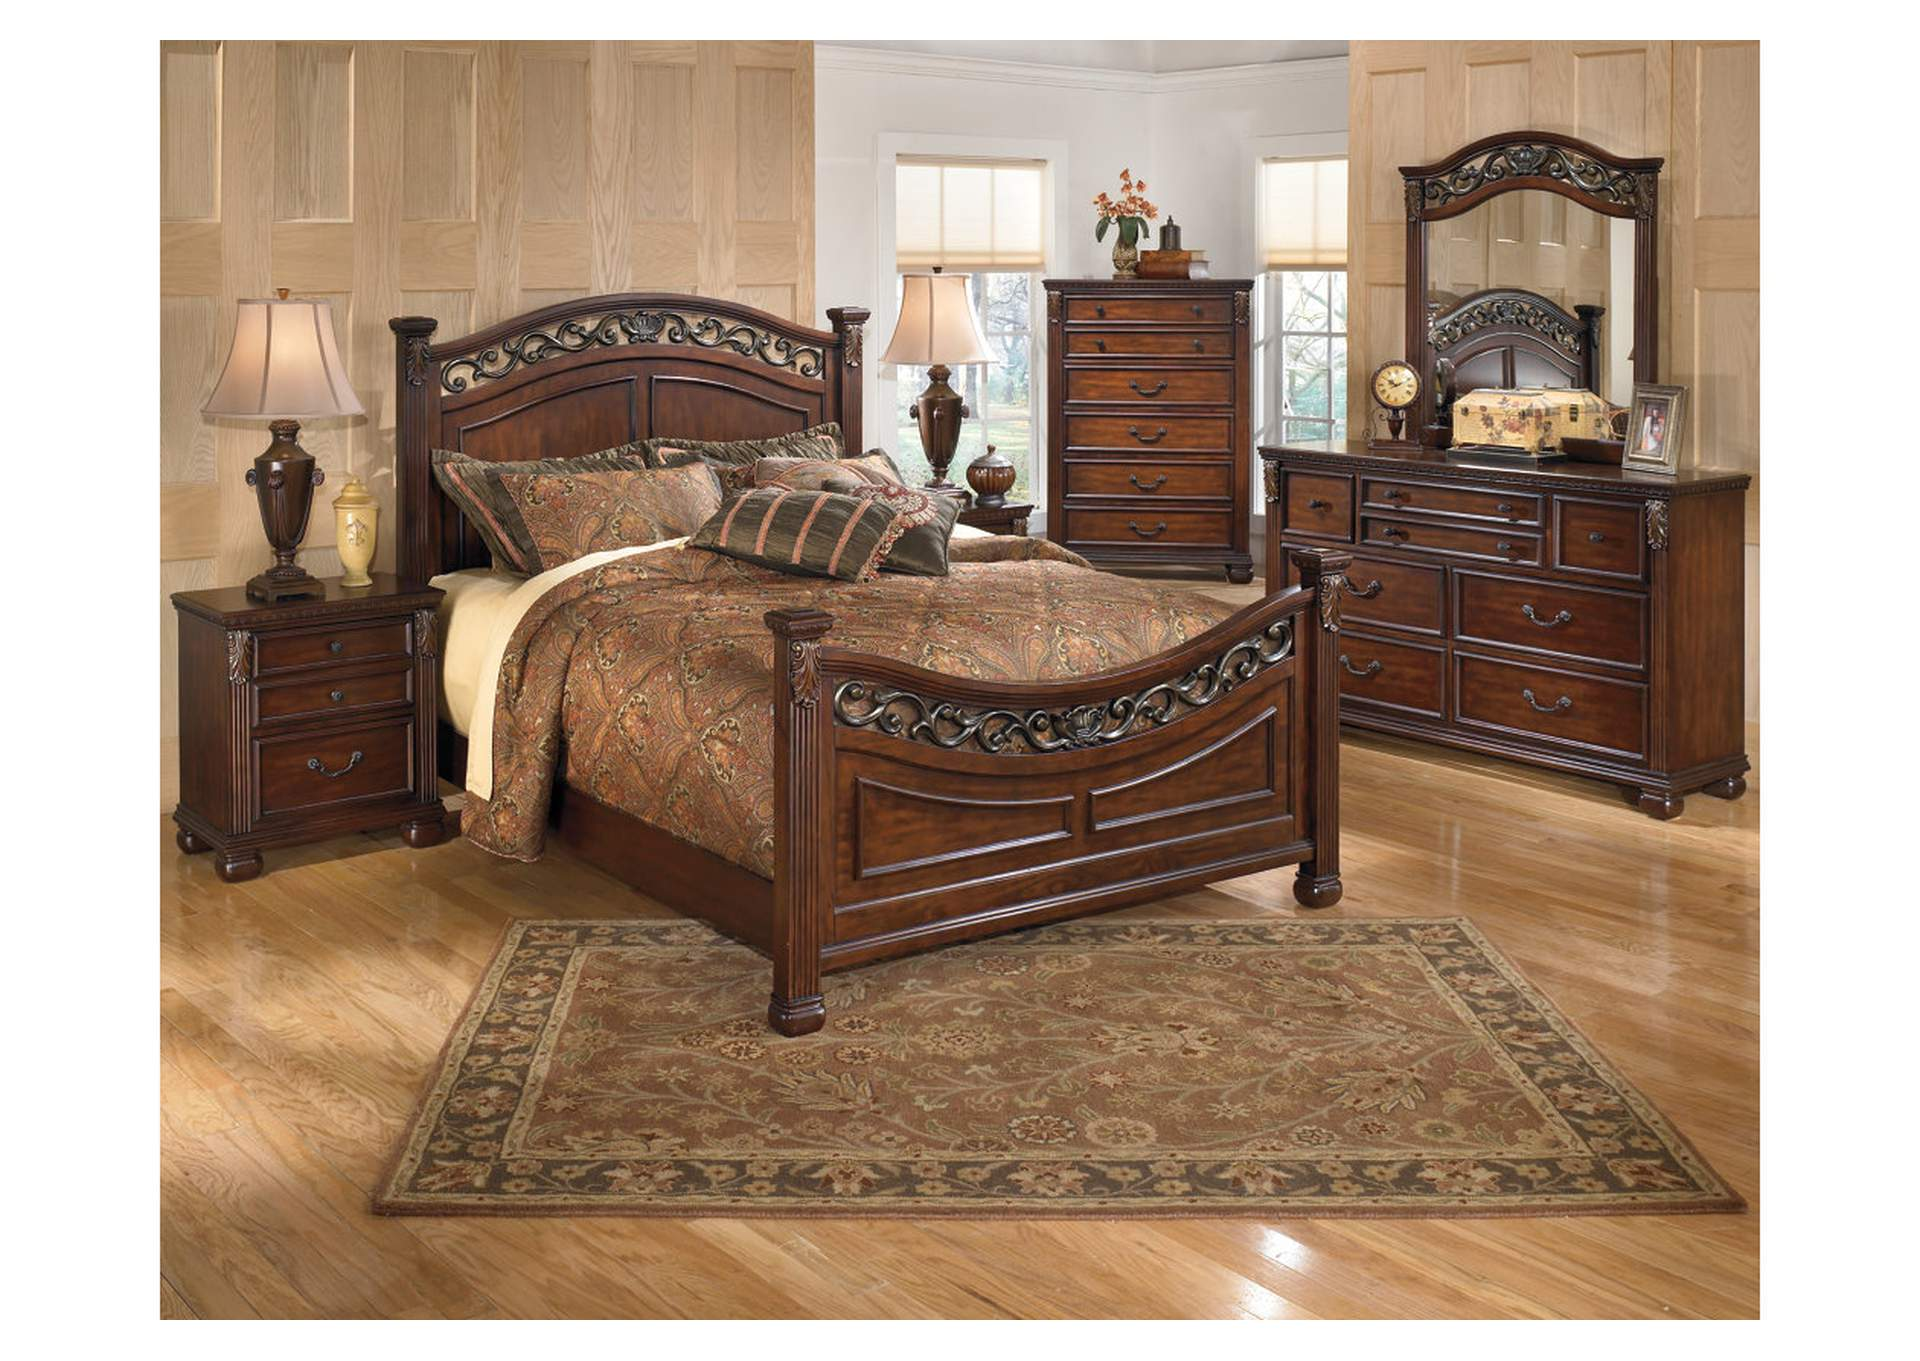 Leahlyn Queen Panel Bed w/Dresser, Mirror, Drawer Chest & Nightstand,Signature Design By Ashley